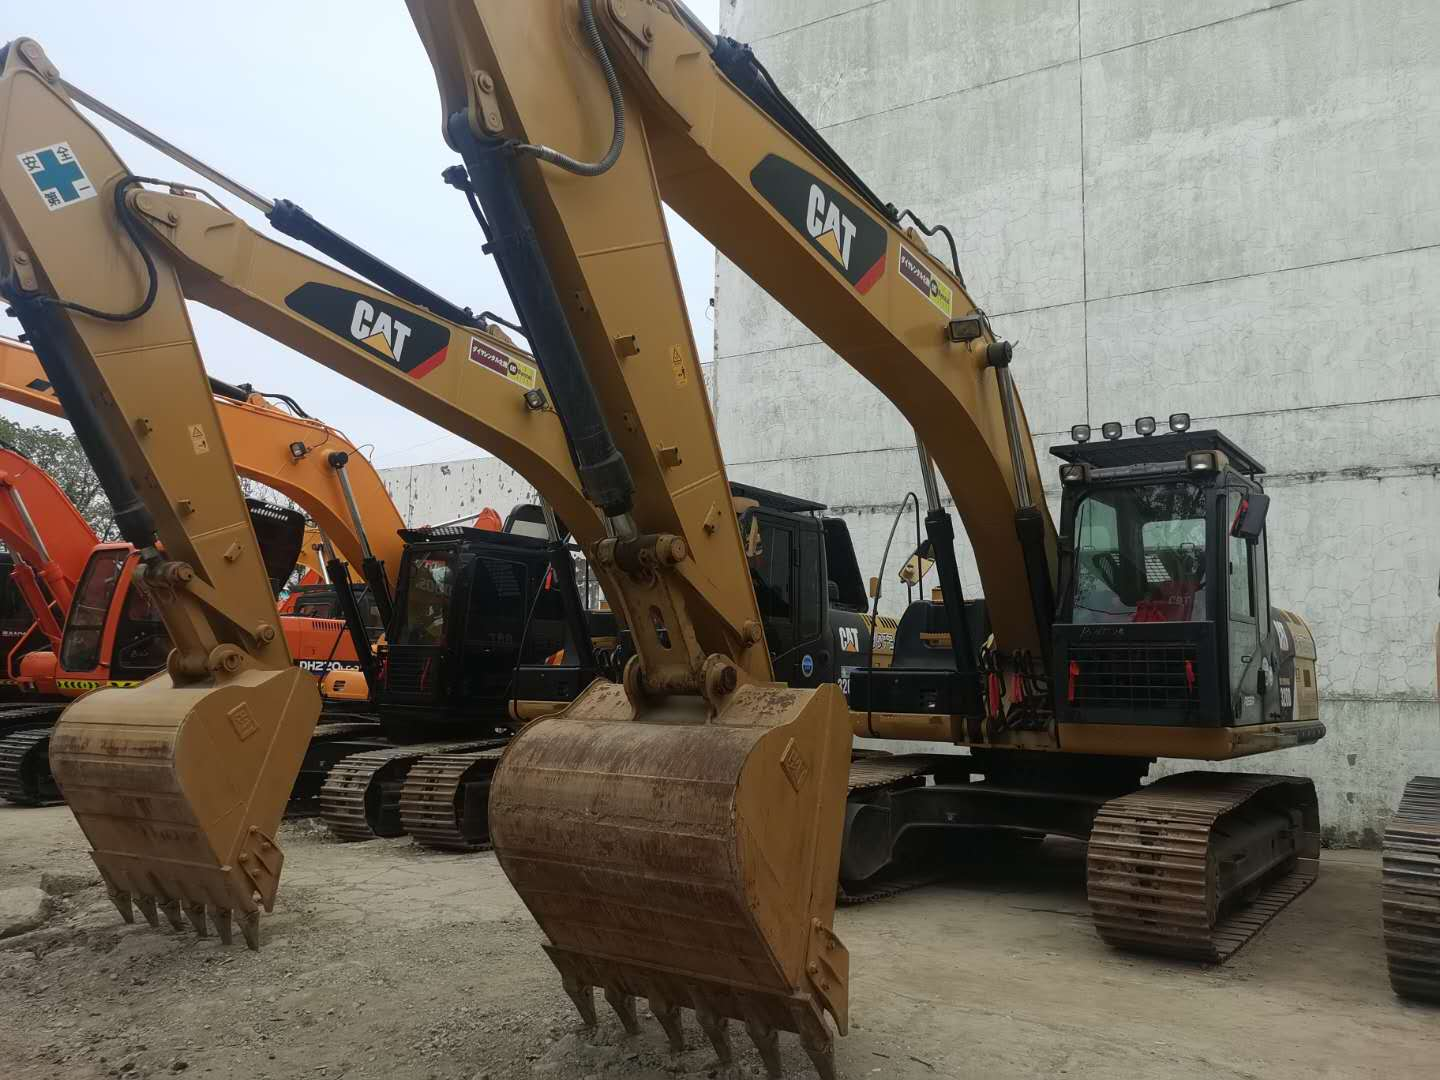 Used CATERPILLAR 320D Crawler Excavator on Sale